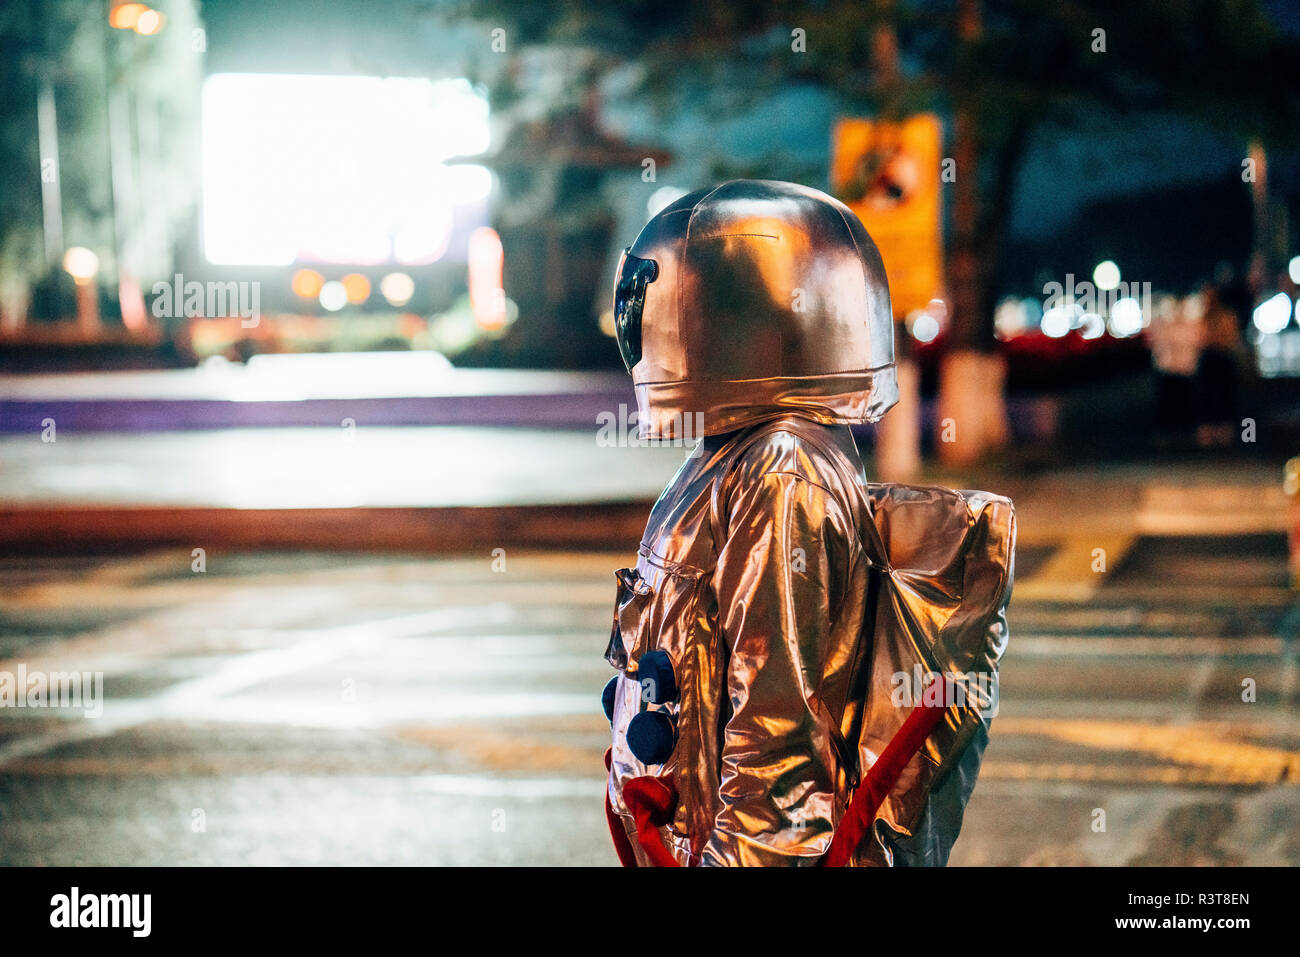 Spaceman on a street in the city at night attracted by shining projection screen Stock Photo